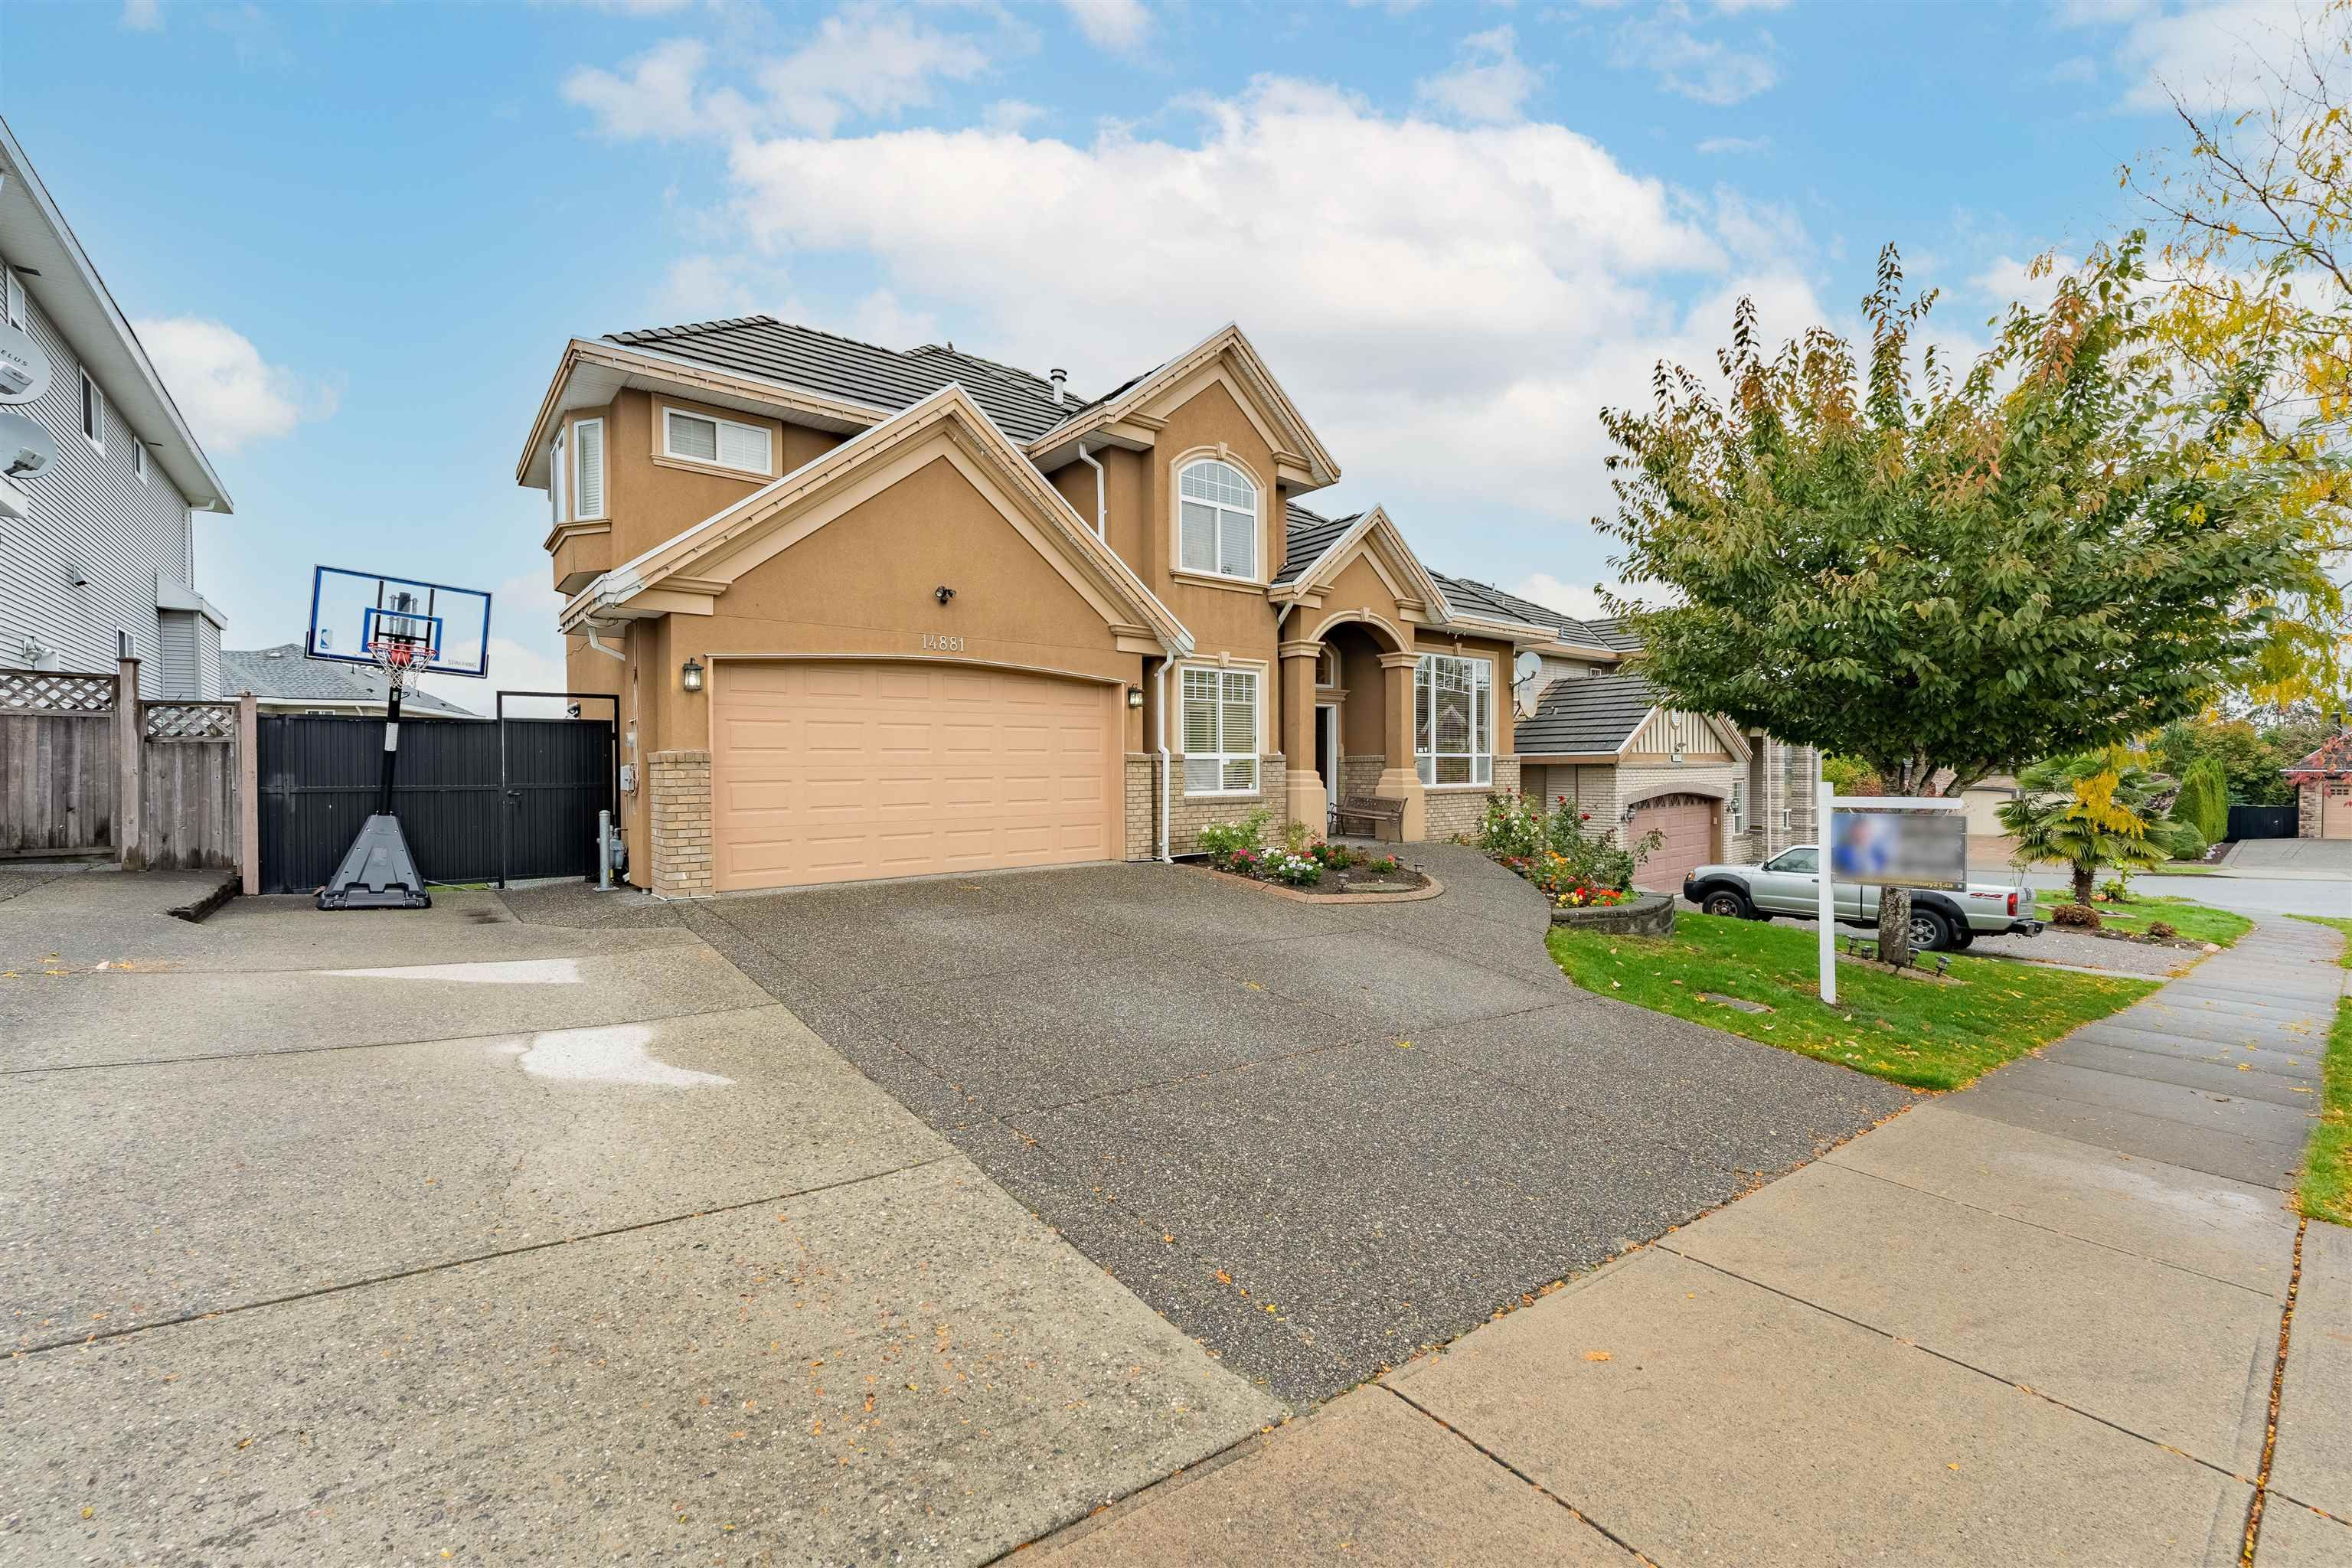 Main Photo: 14881 74A Avenue in Surrey: East Newton House for sale : MLS®# R2625718